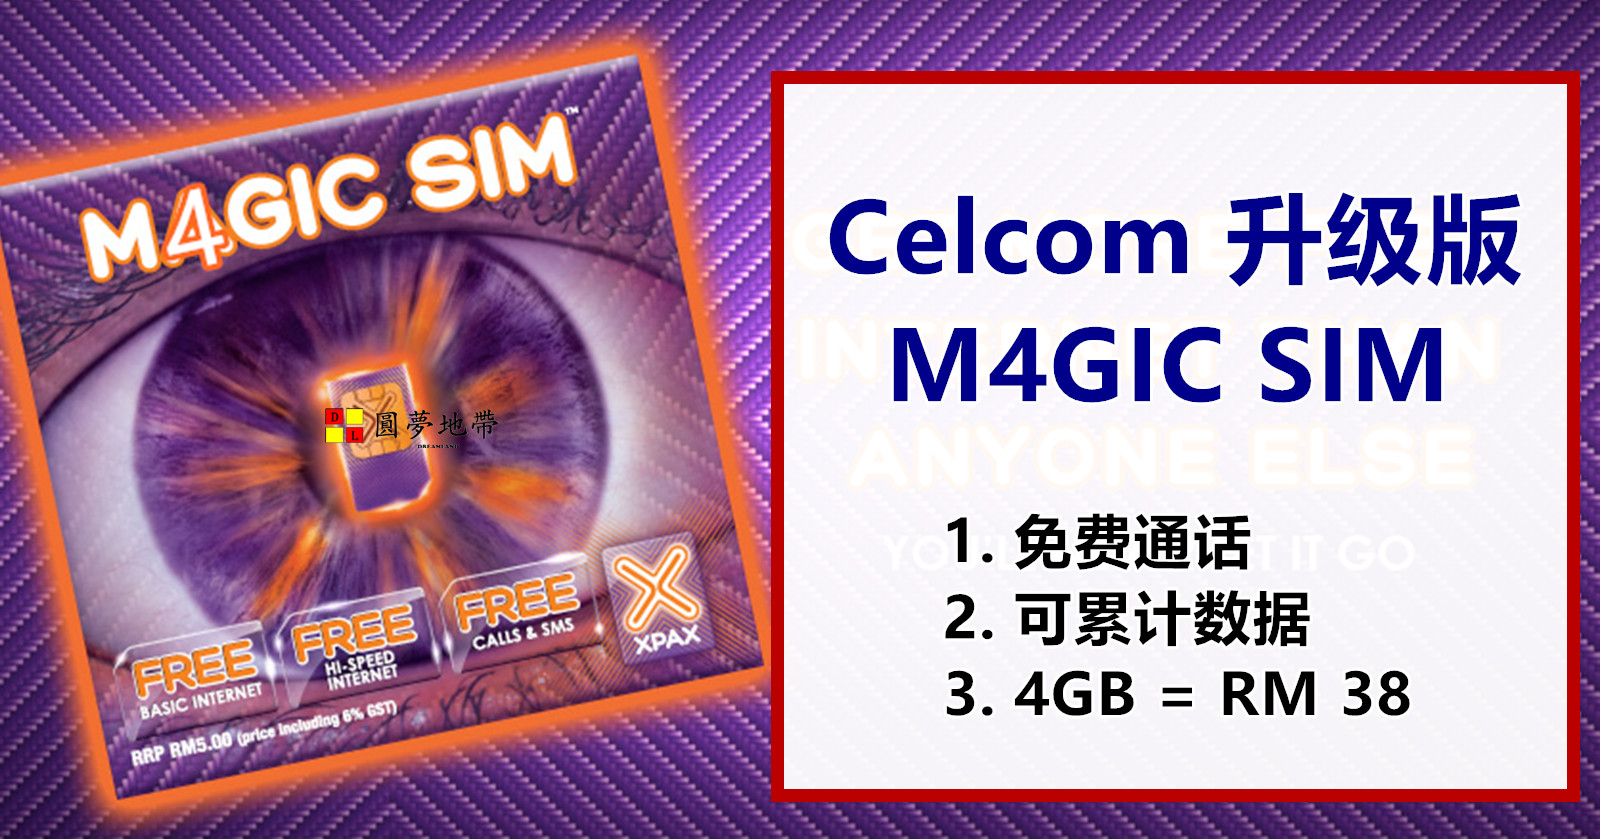 Celcom magic sim apn